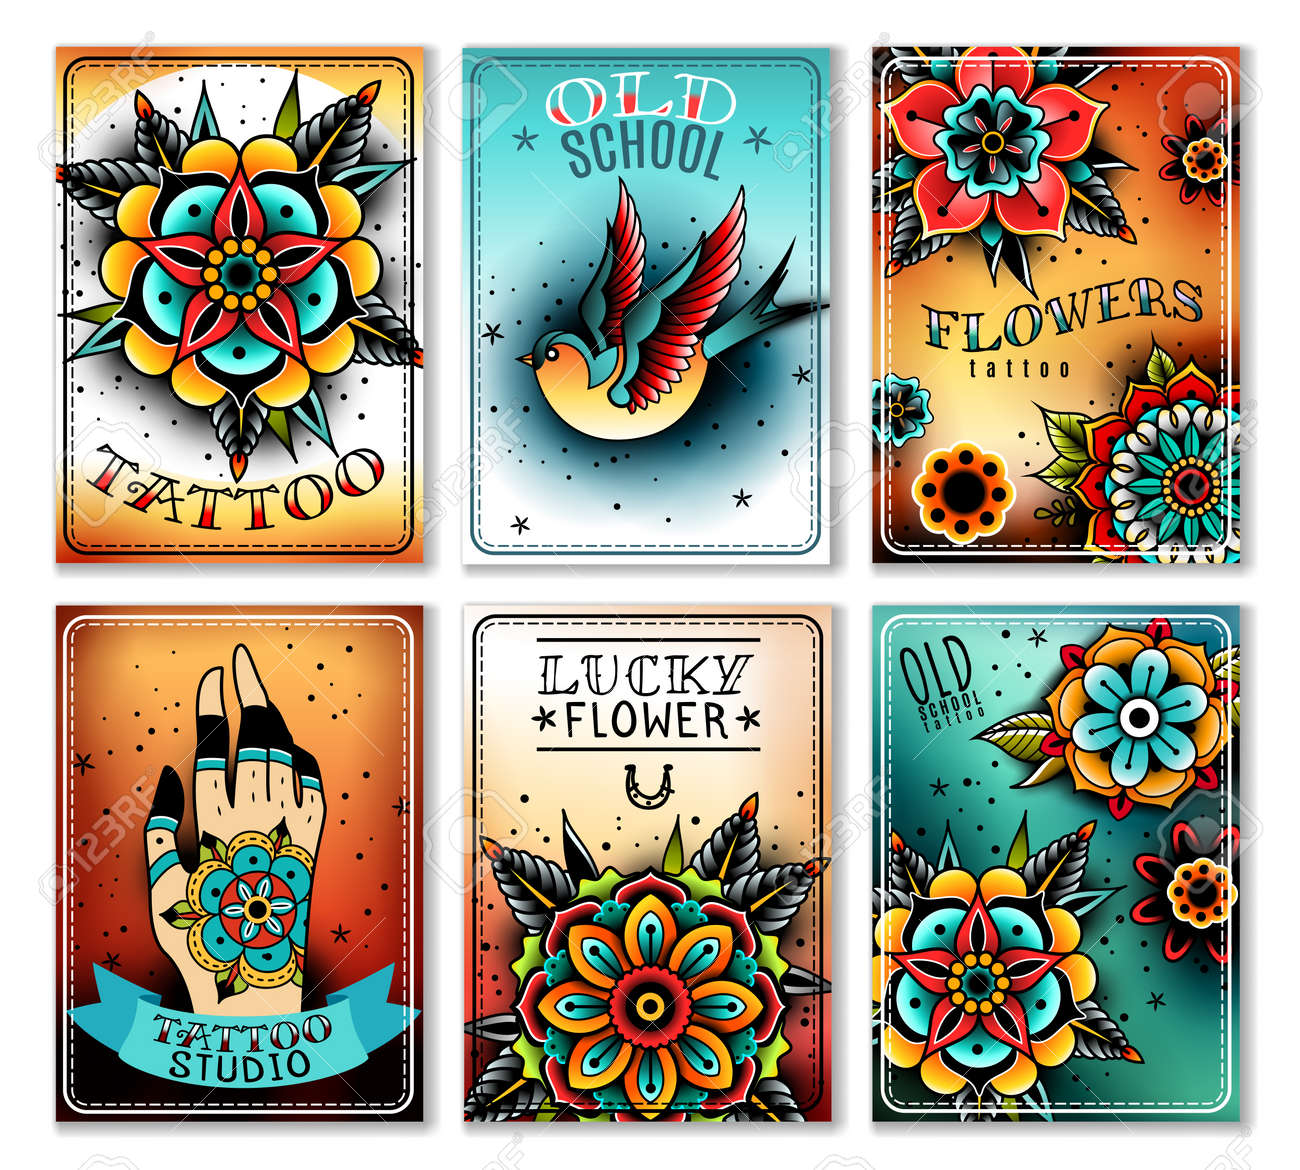 Old School Tattoo Art Flowers Mini Cards Banners Old School